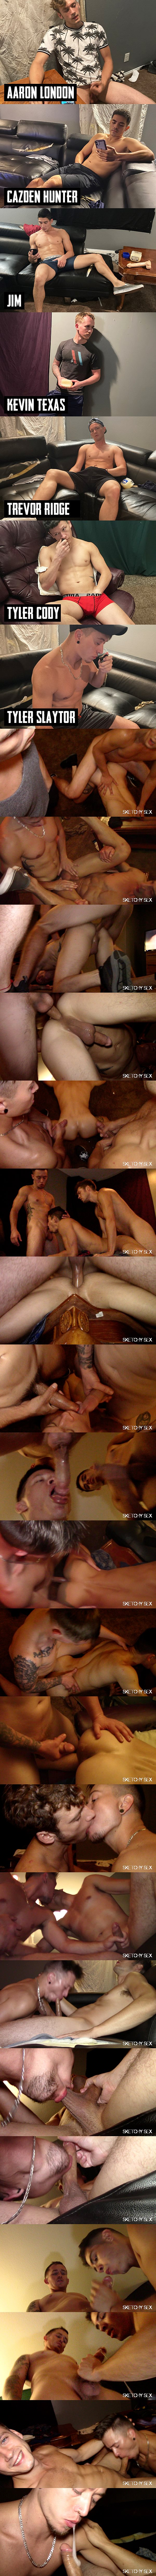 Sketchysex - new sketchy models Kevin Texas, Trevor Ridge and Tyler Slaytor gangbang and bareback cum sluts Jim and Tyler Cody before they breed two bottoms in Loads To Go 02